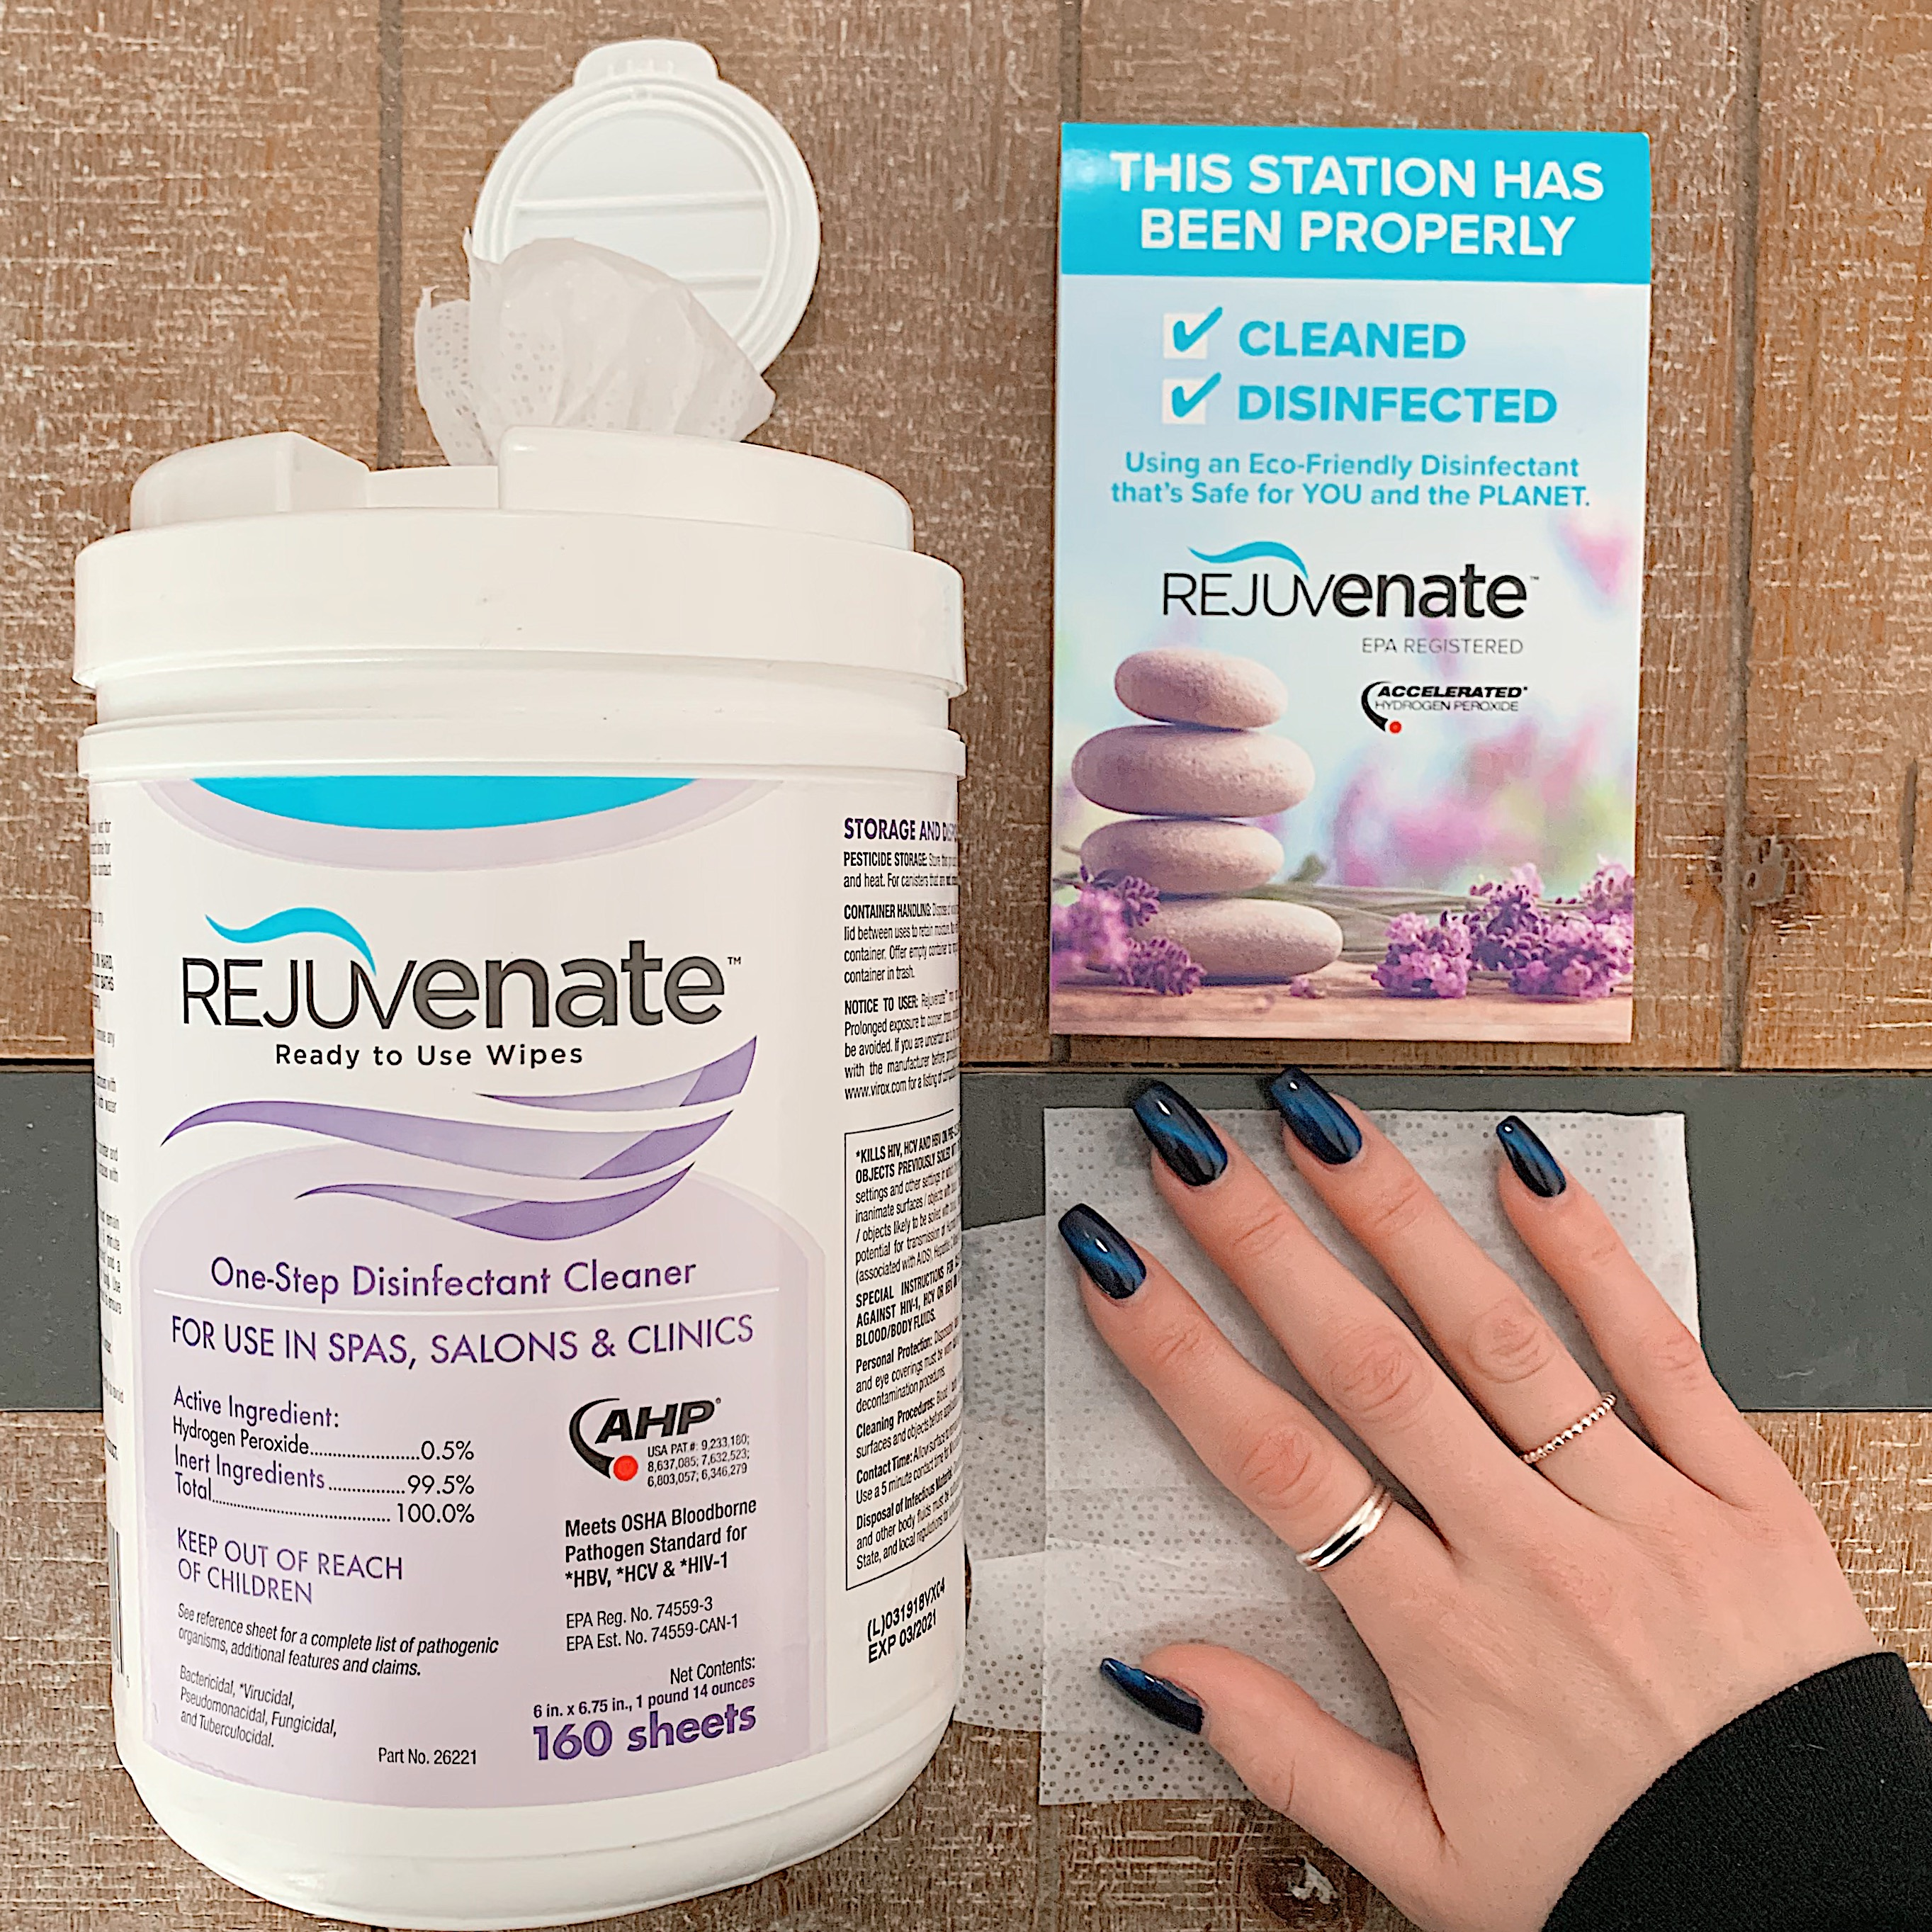 Win It Wednesday: Rejuvenate Disinfectant Wipes